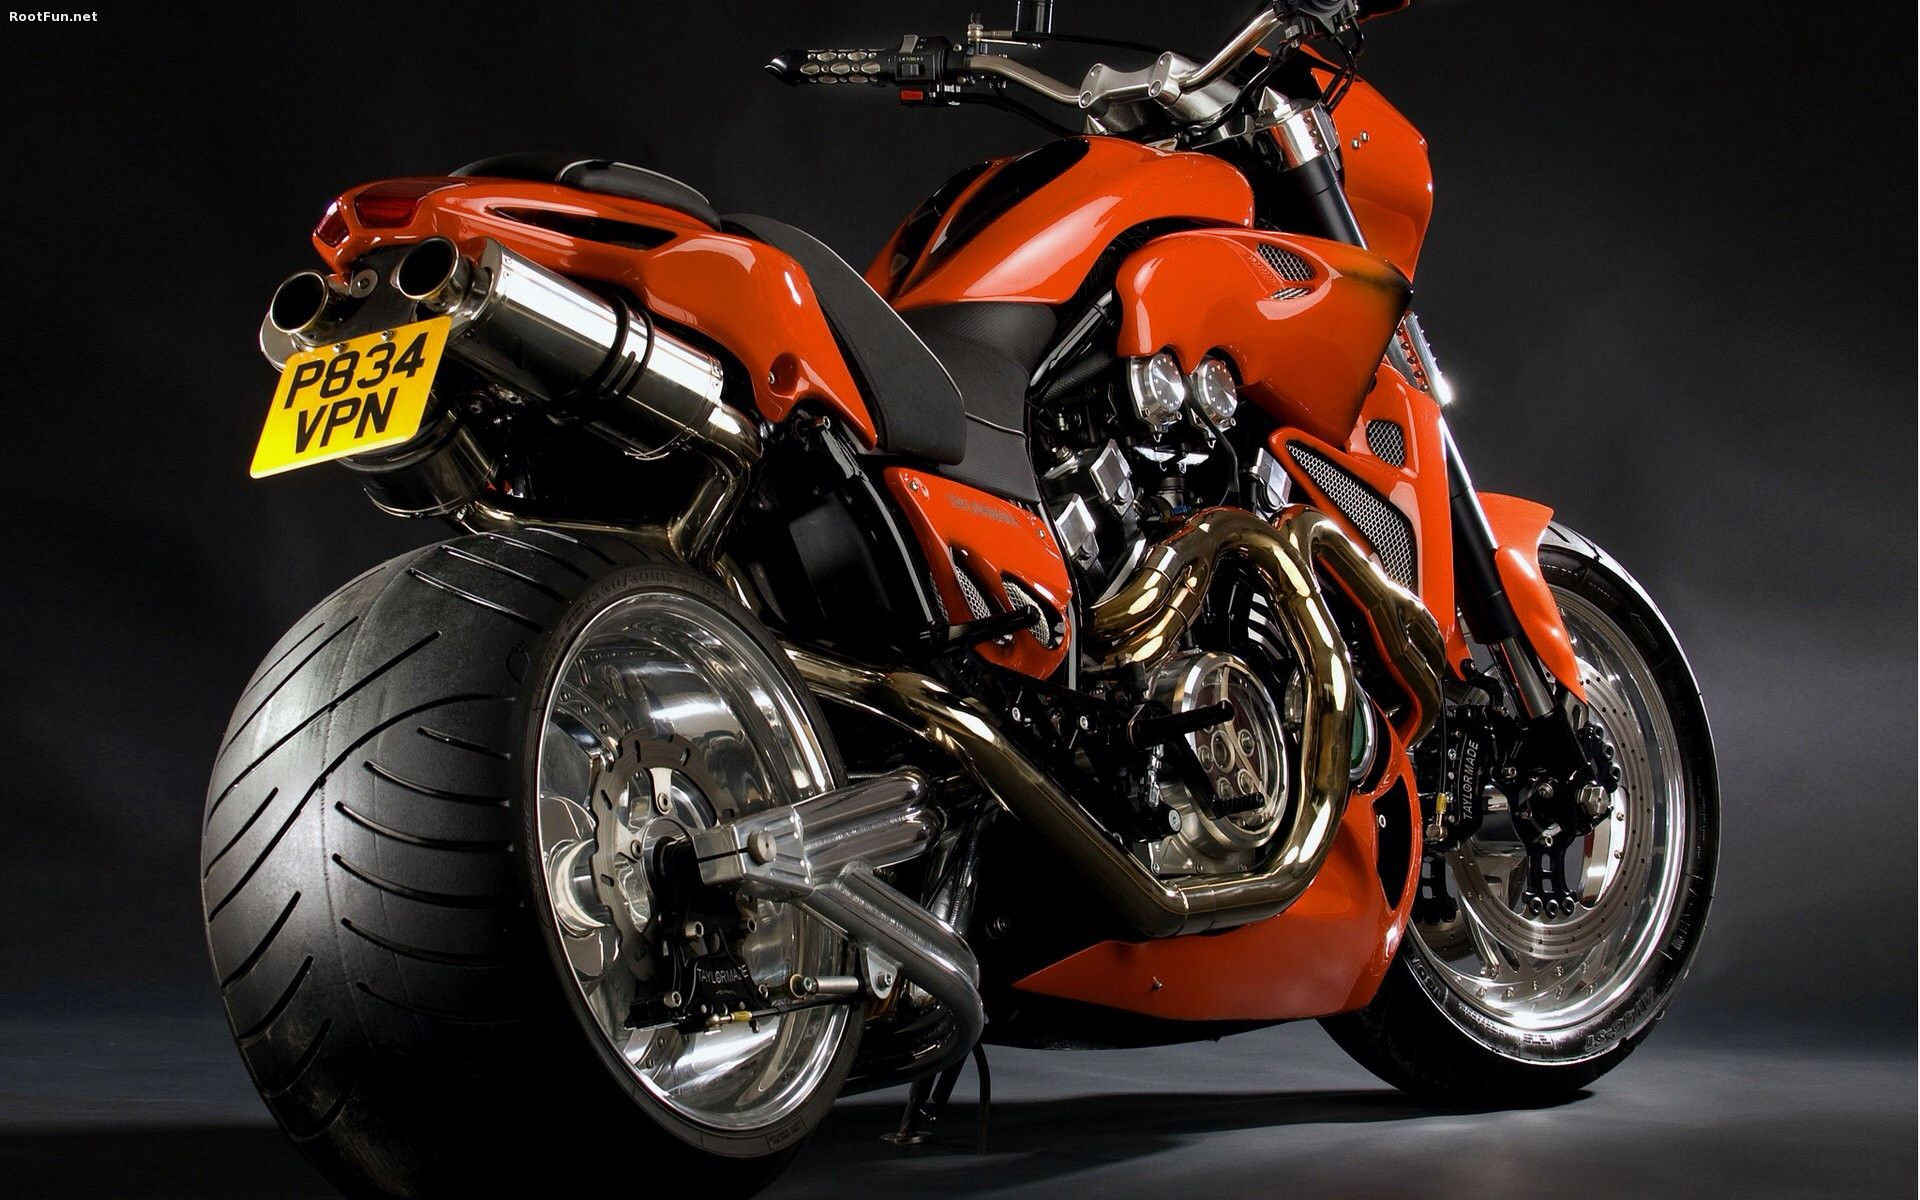 Surely This Beast Cannot Count As A Super Sportbike But There It